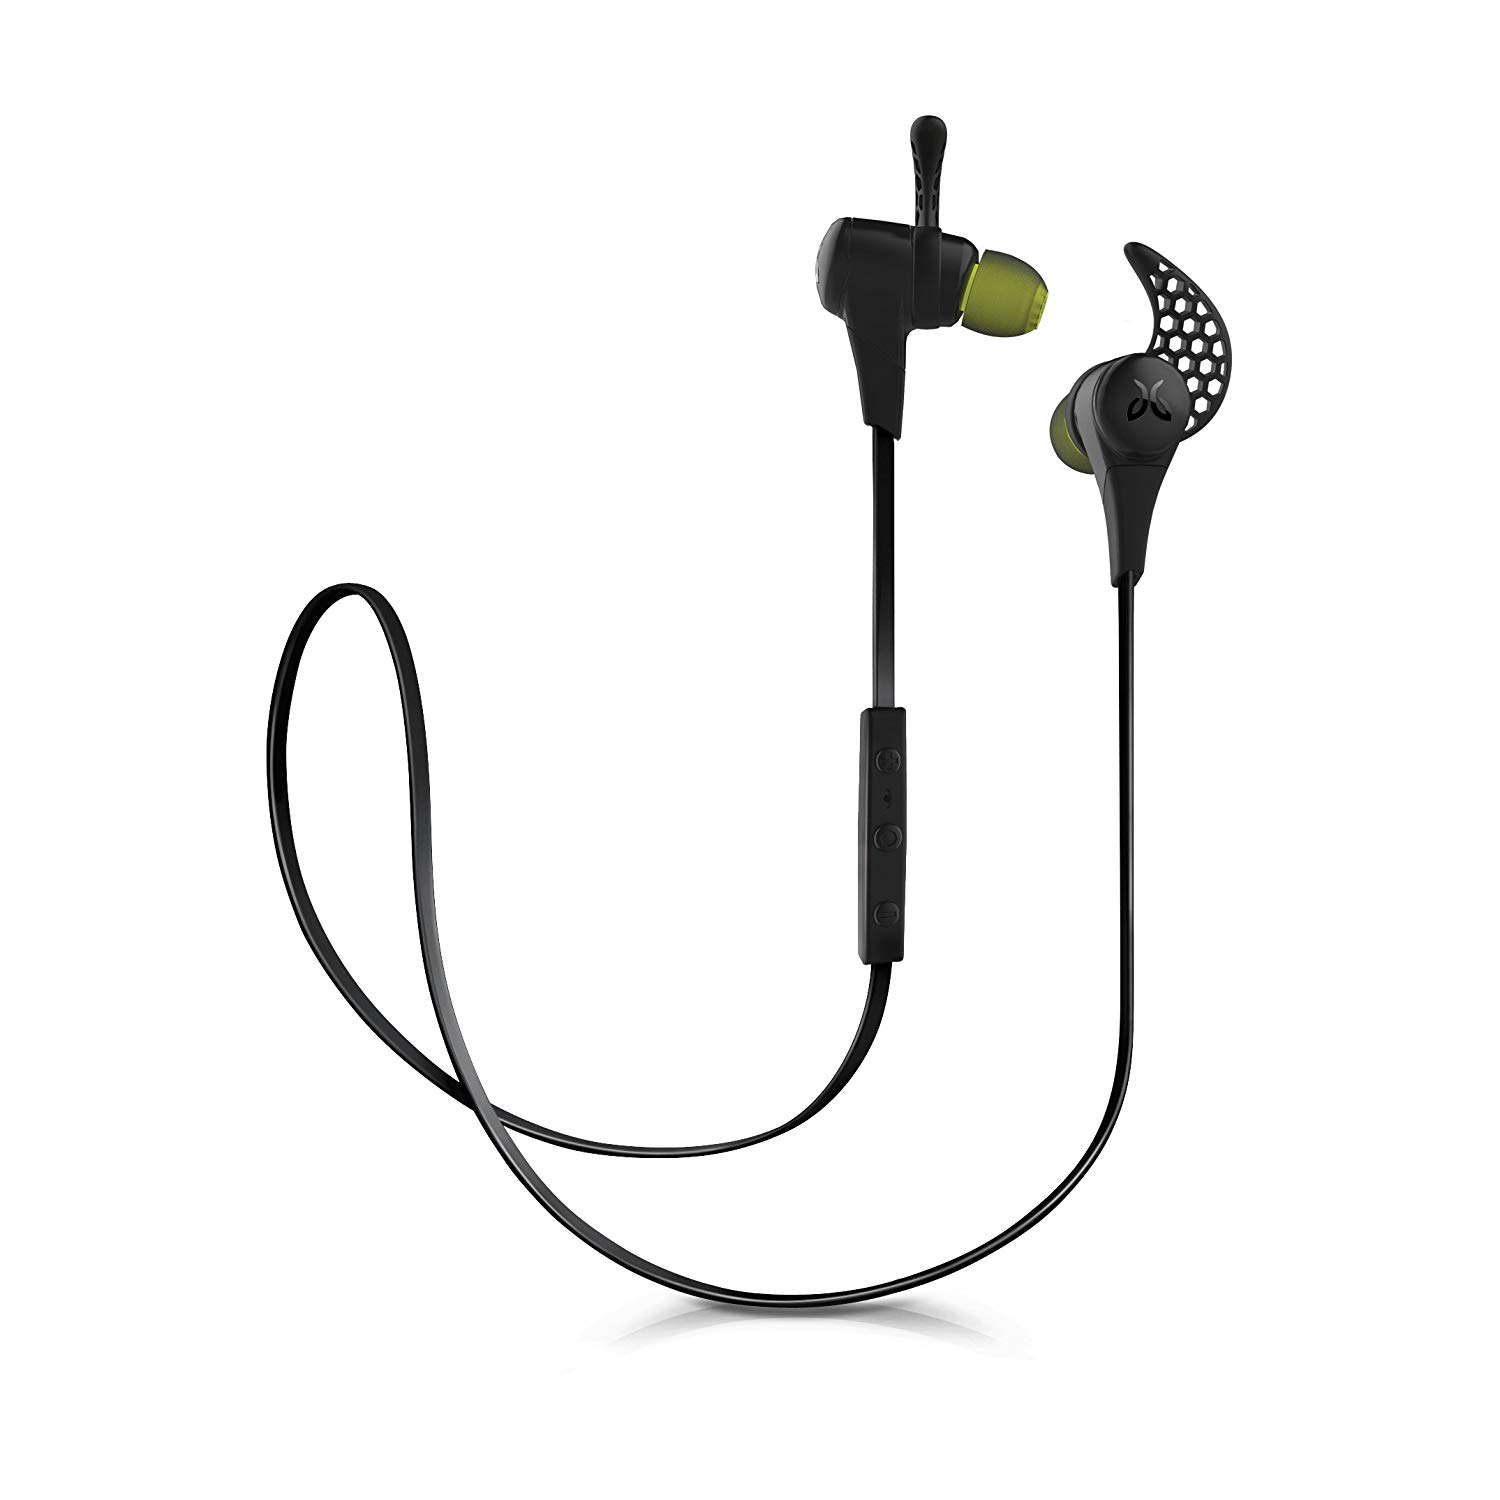 Jaybird X2 Sport Wireless Bluetooth In-Ear Earbud